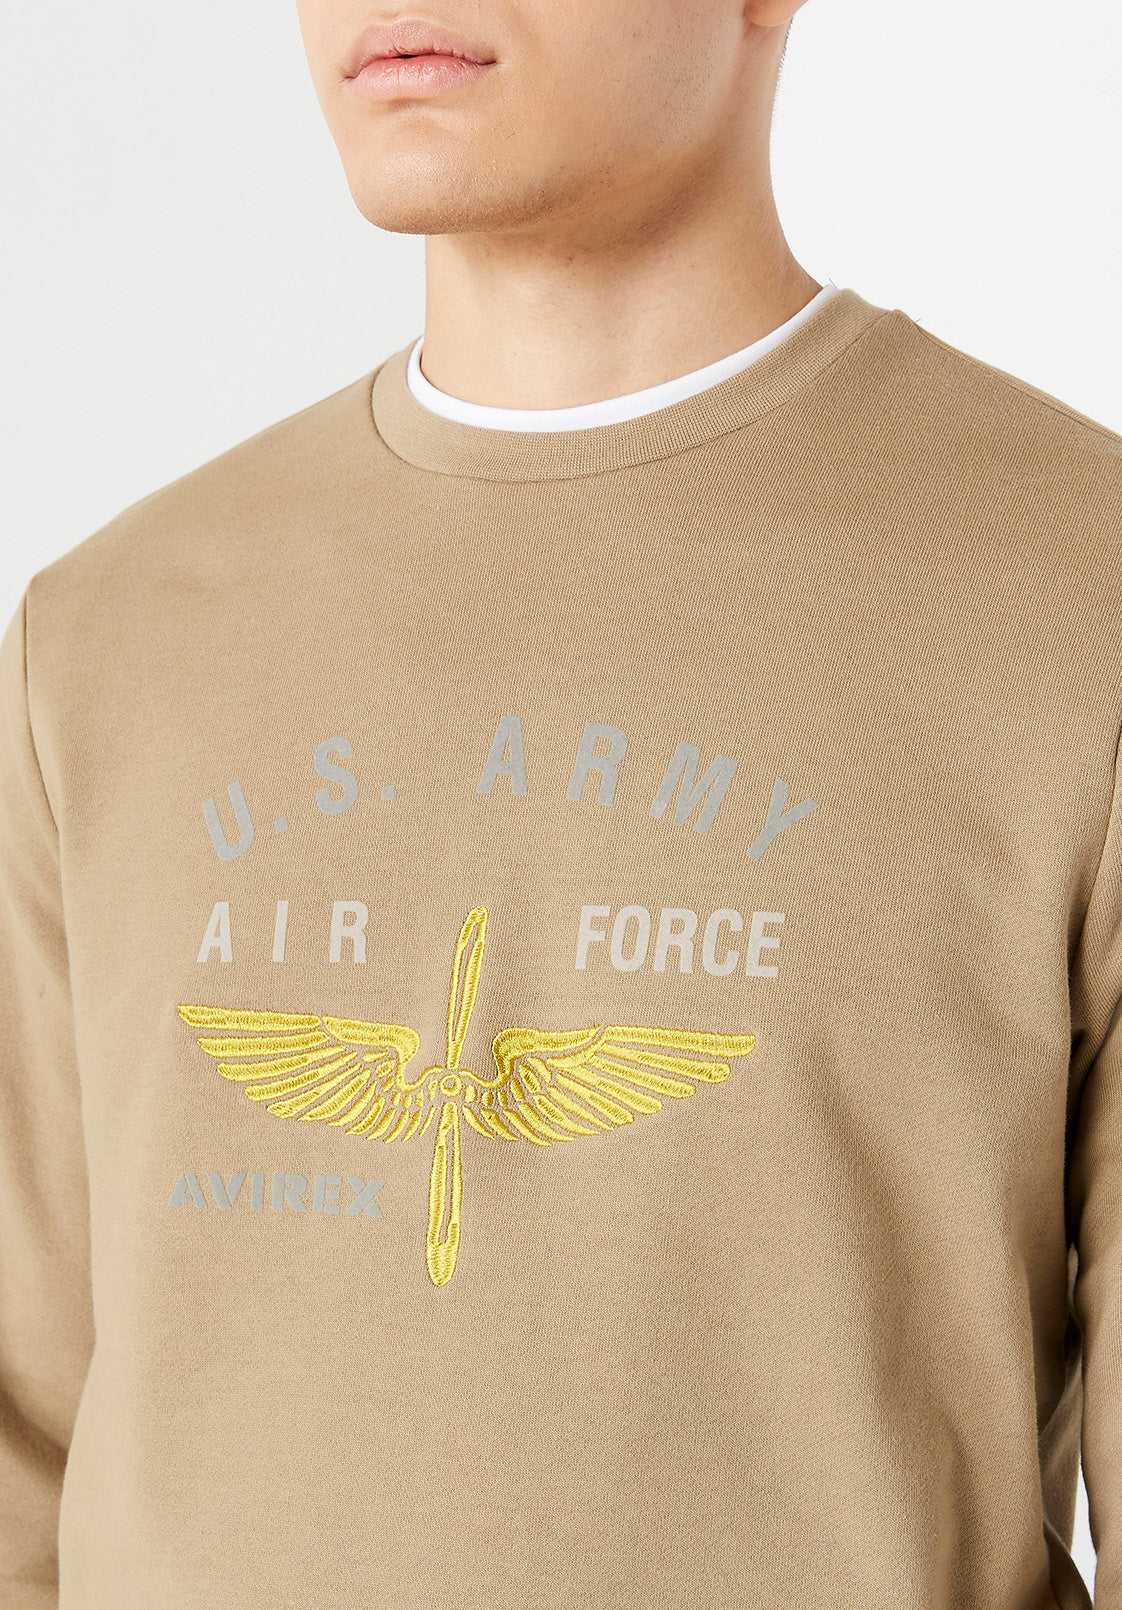 Detailed view of US Army logo.  Yellow wings and white letters saying Air Force